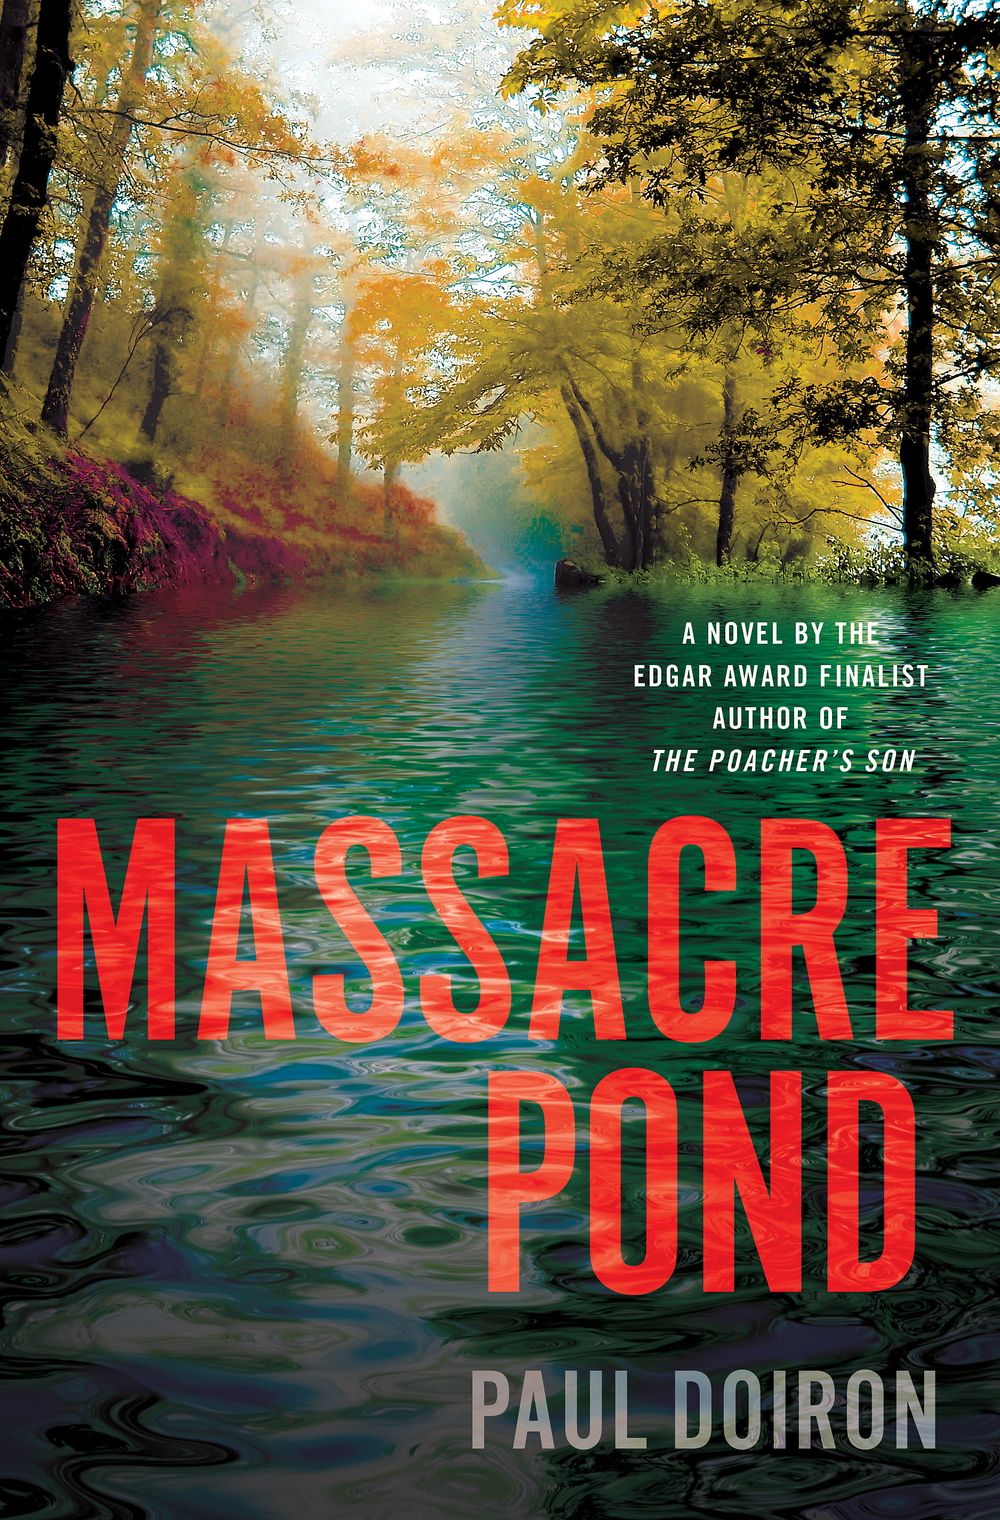 massacre pond copy.jpg